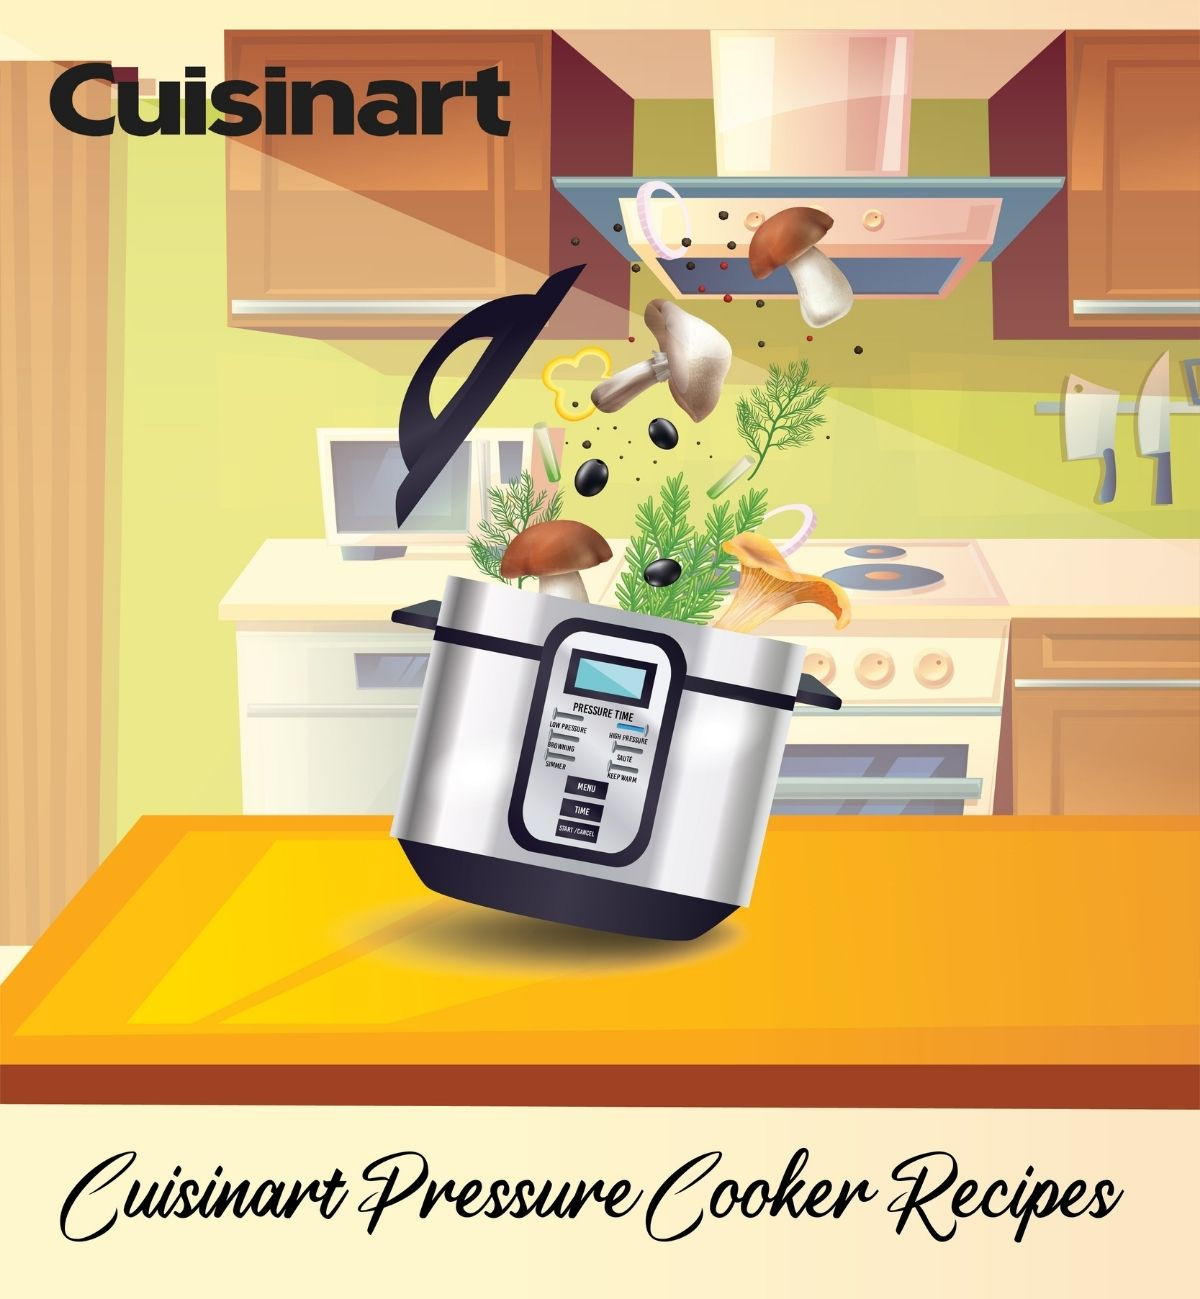 Cuisinart Pressure Cooker Recipes to Amaze Your Taste Buds-01